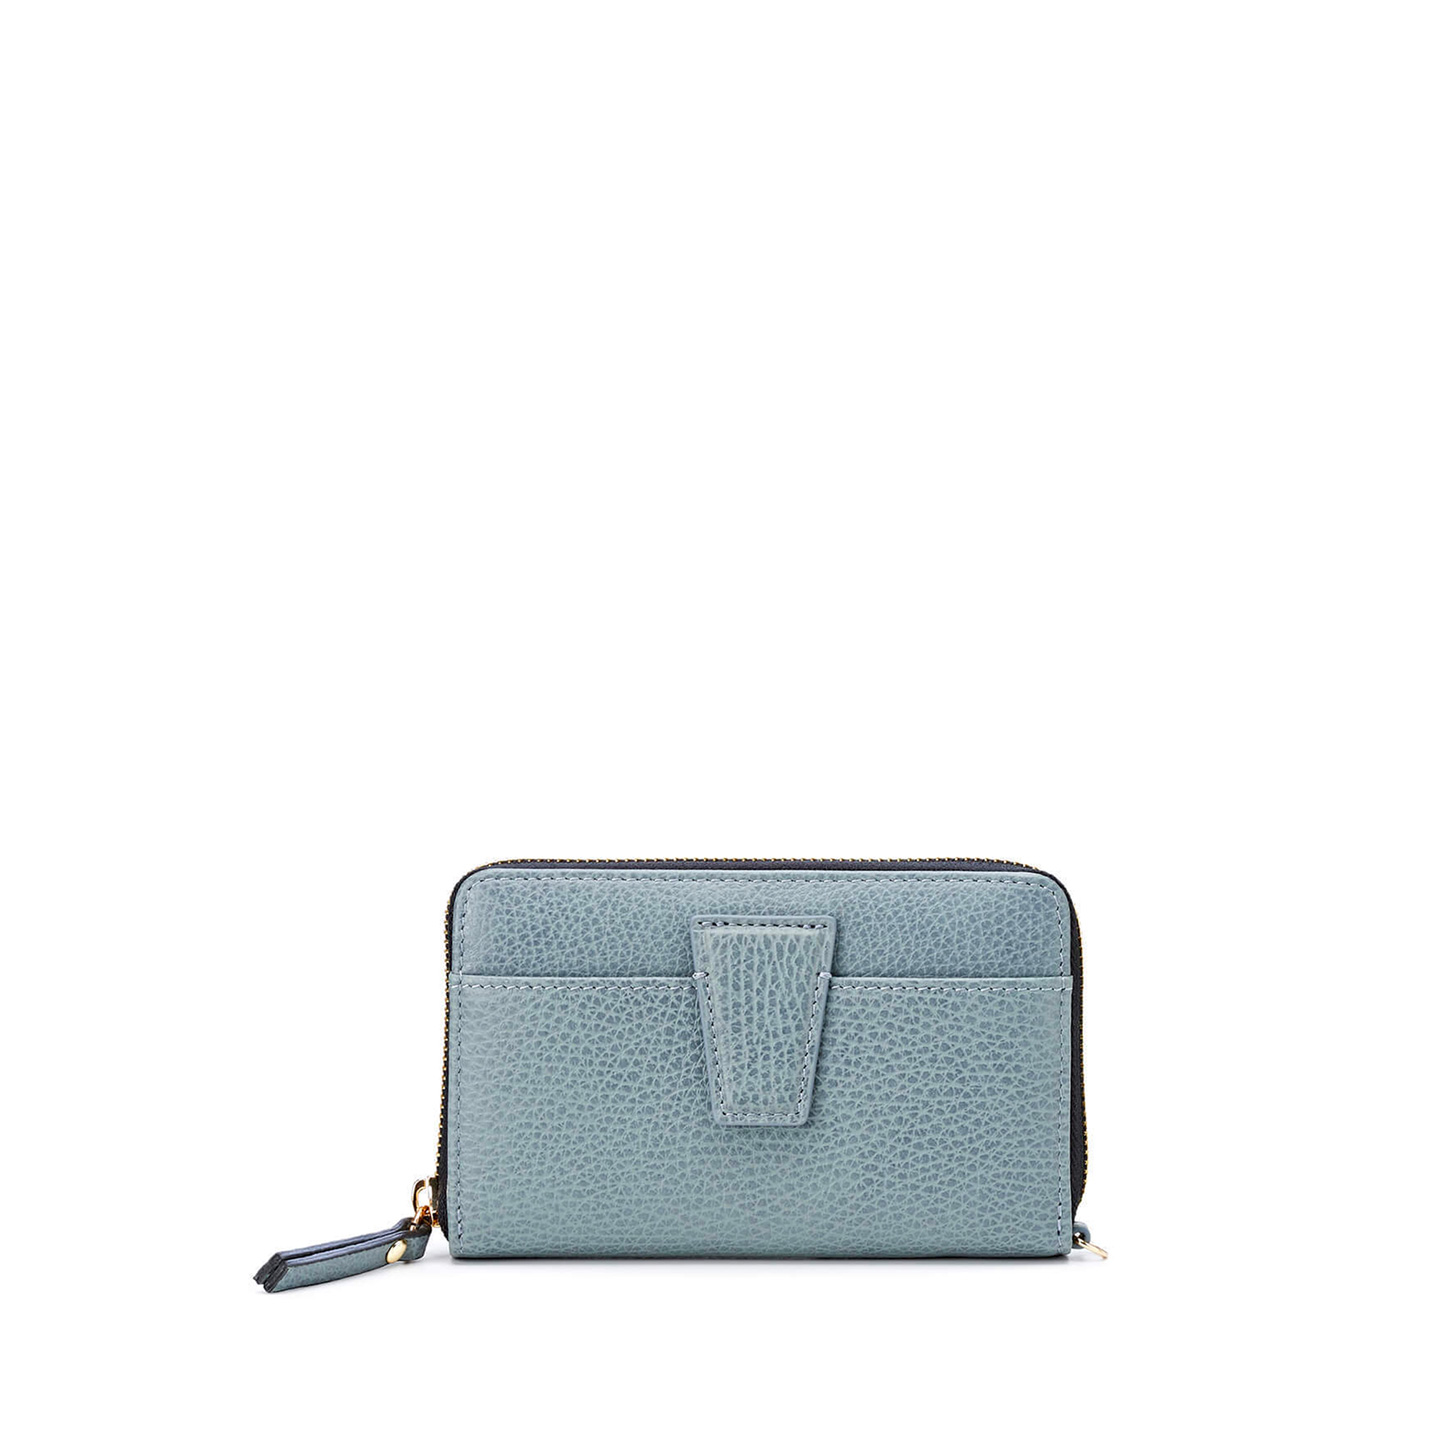 GIANNI CHIARINI: ELETTRA MEDIUM LIGHT BLUE WALLET